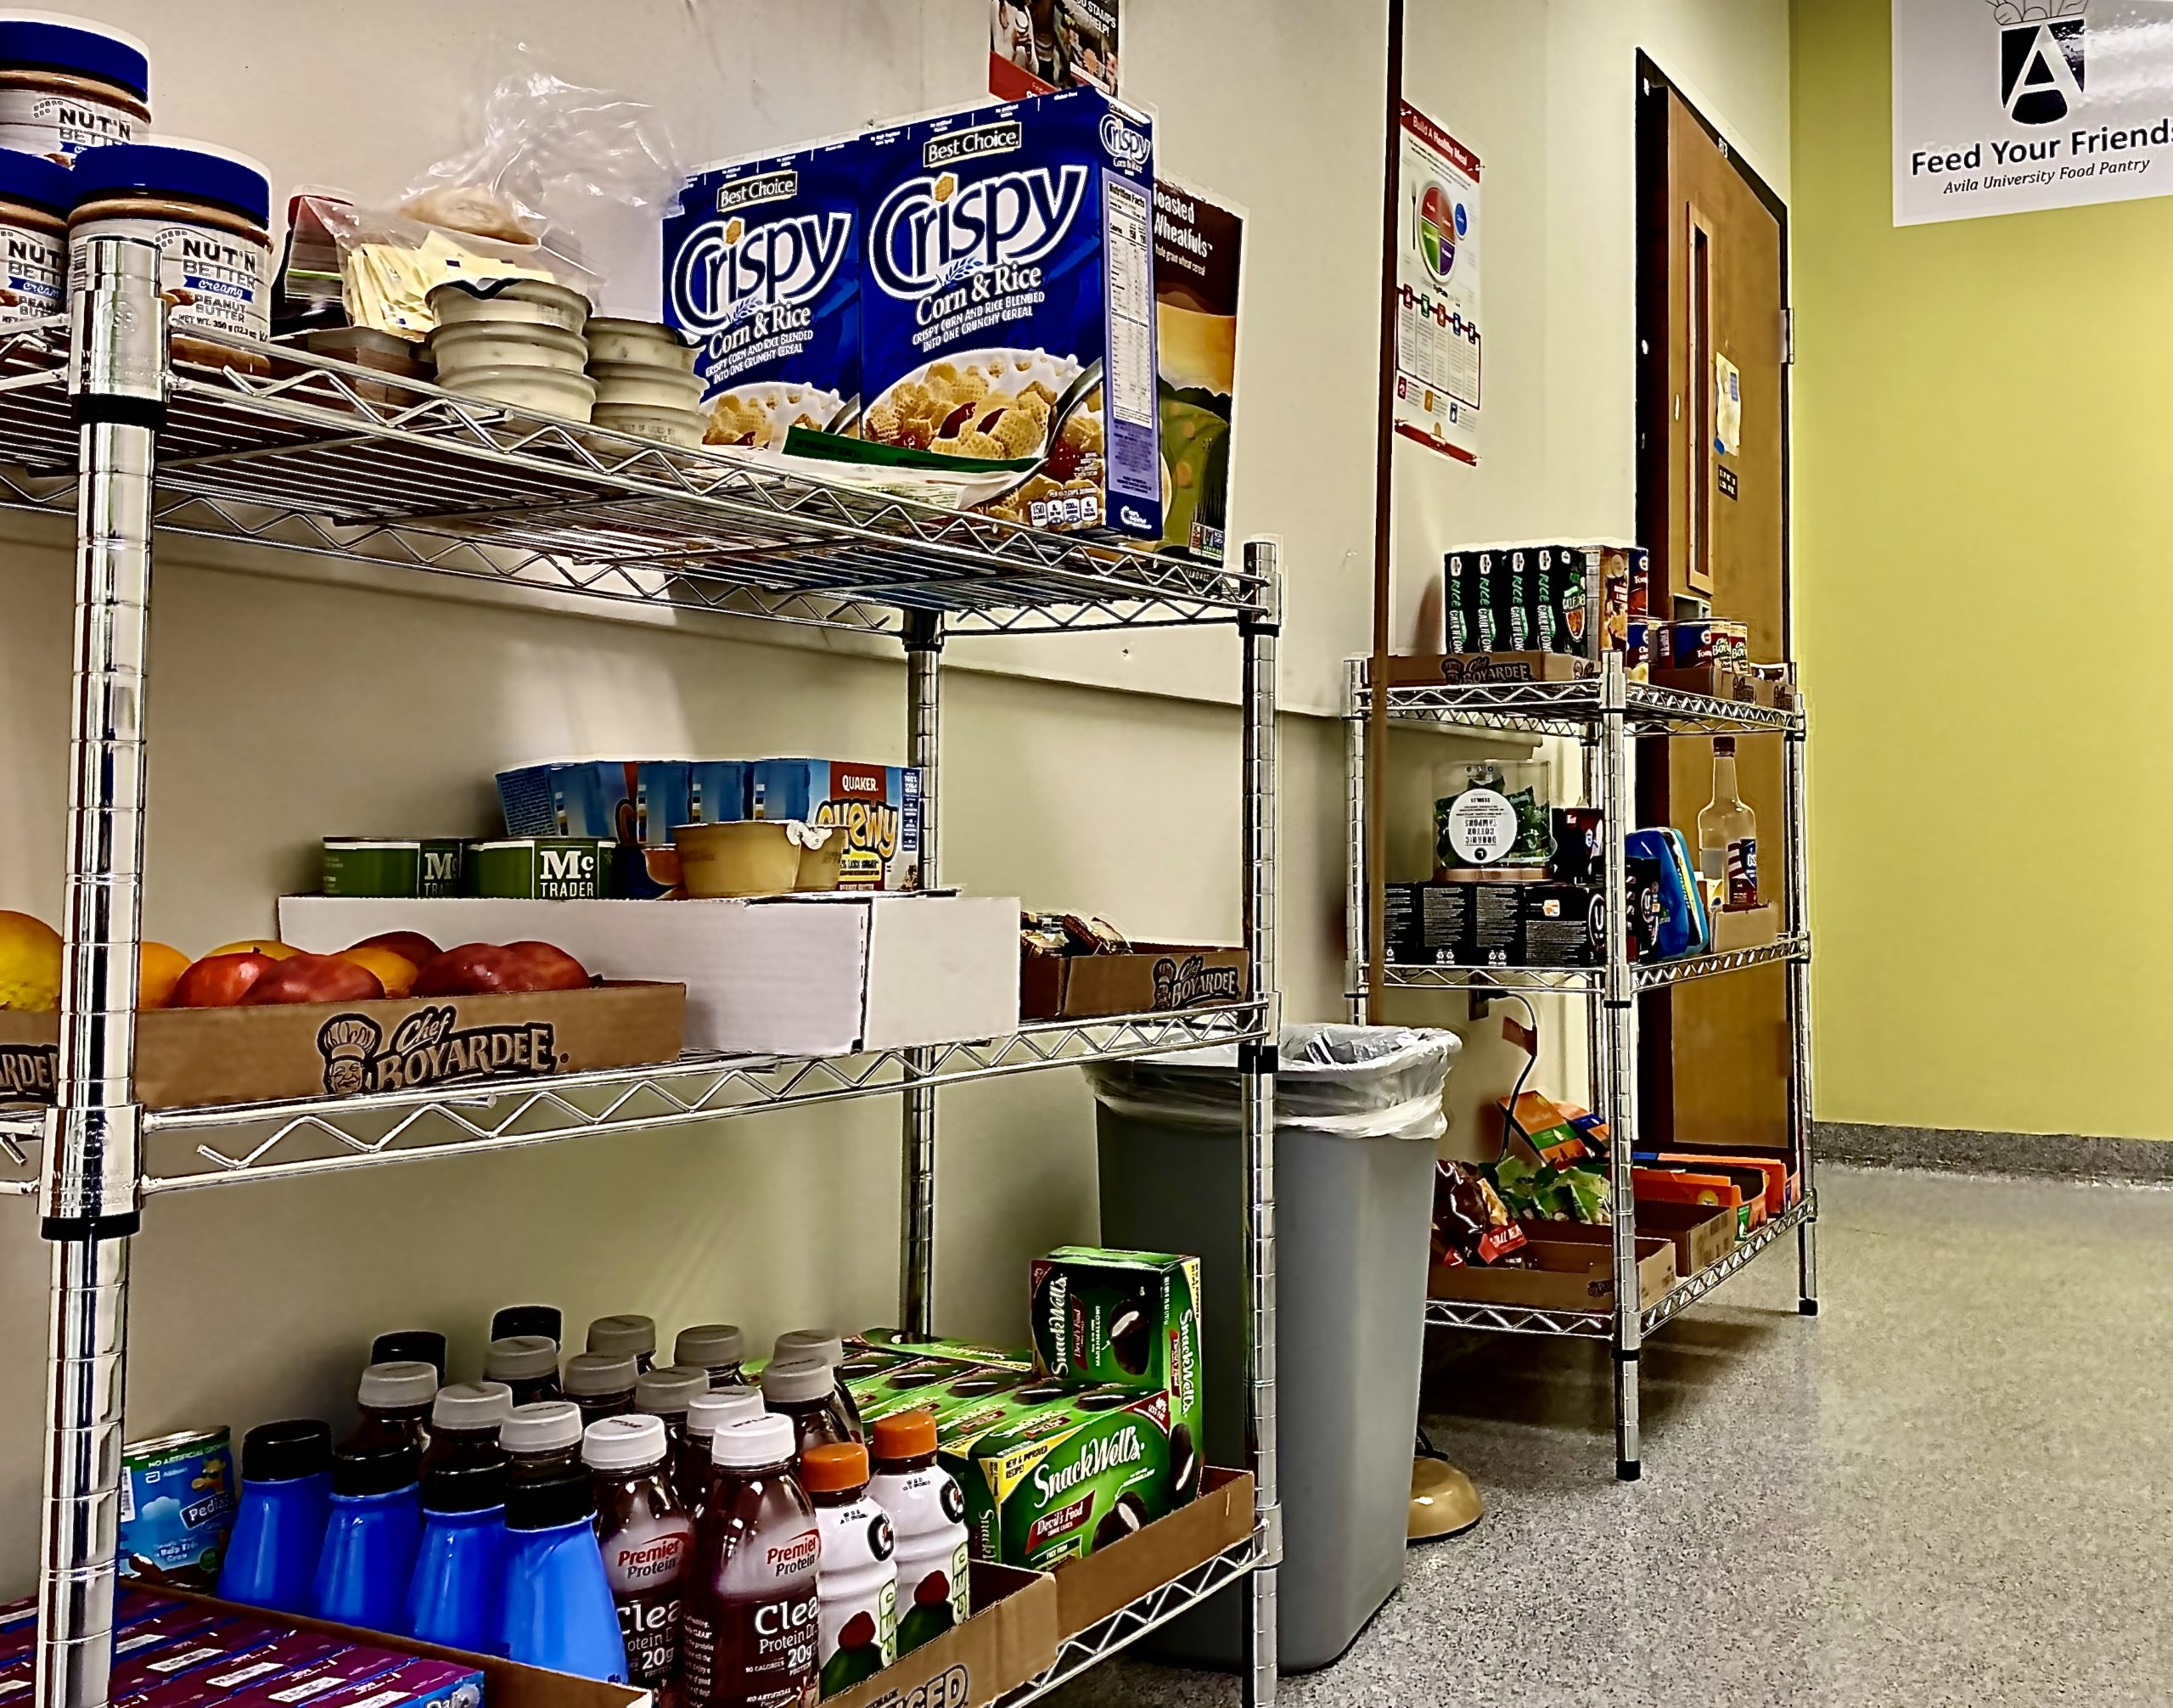 Image of shelves in Avila University food pantry